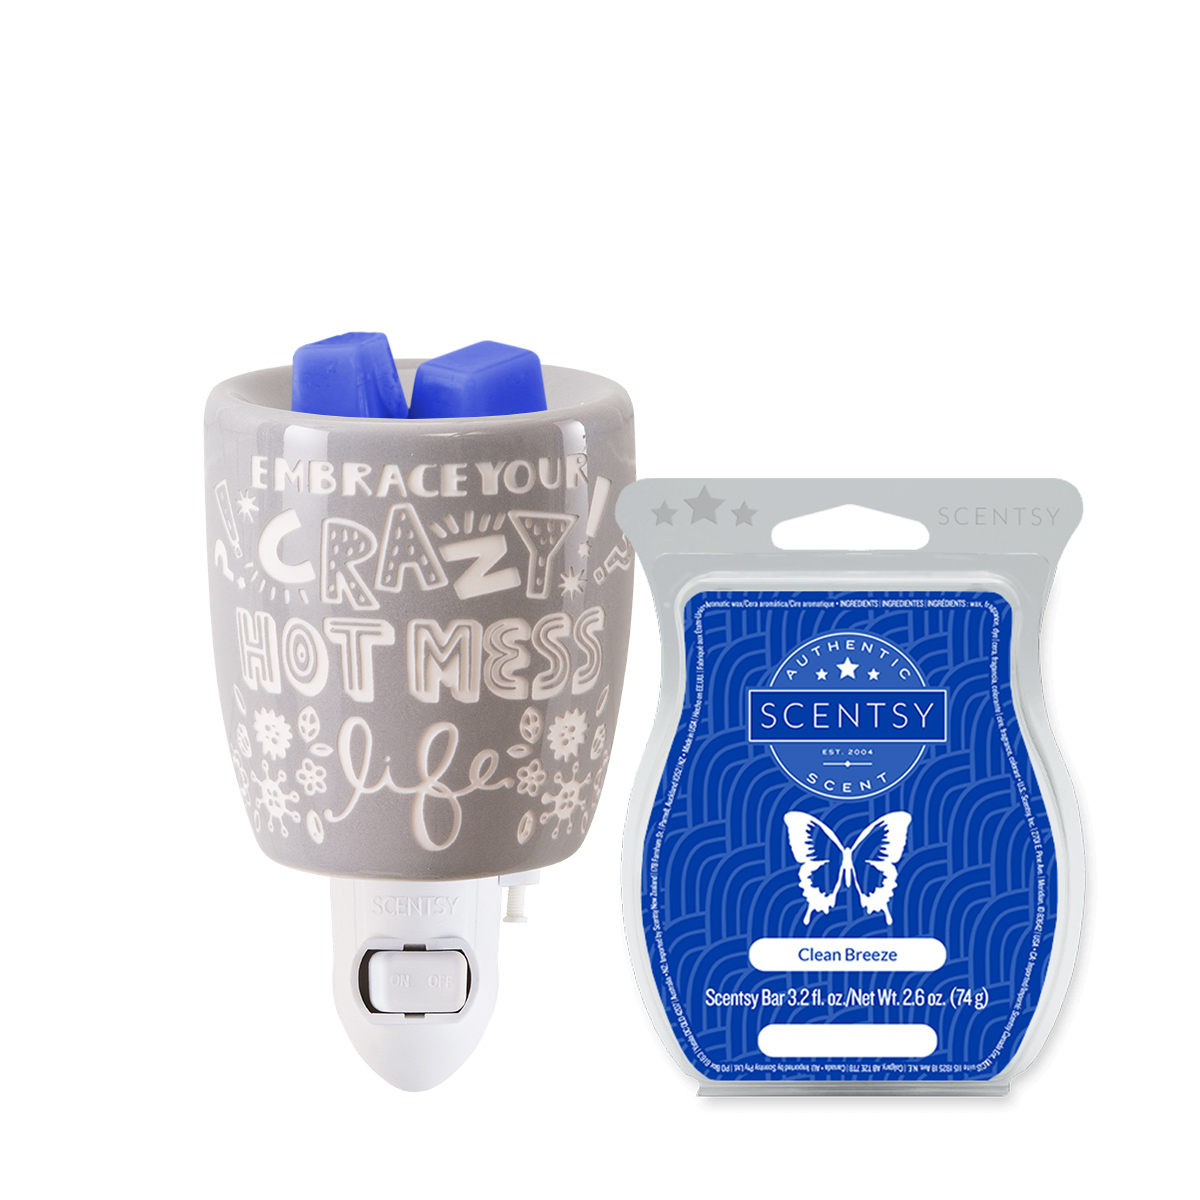 crazy hot mess mini warmer mothers day bundle scentsy